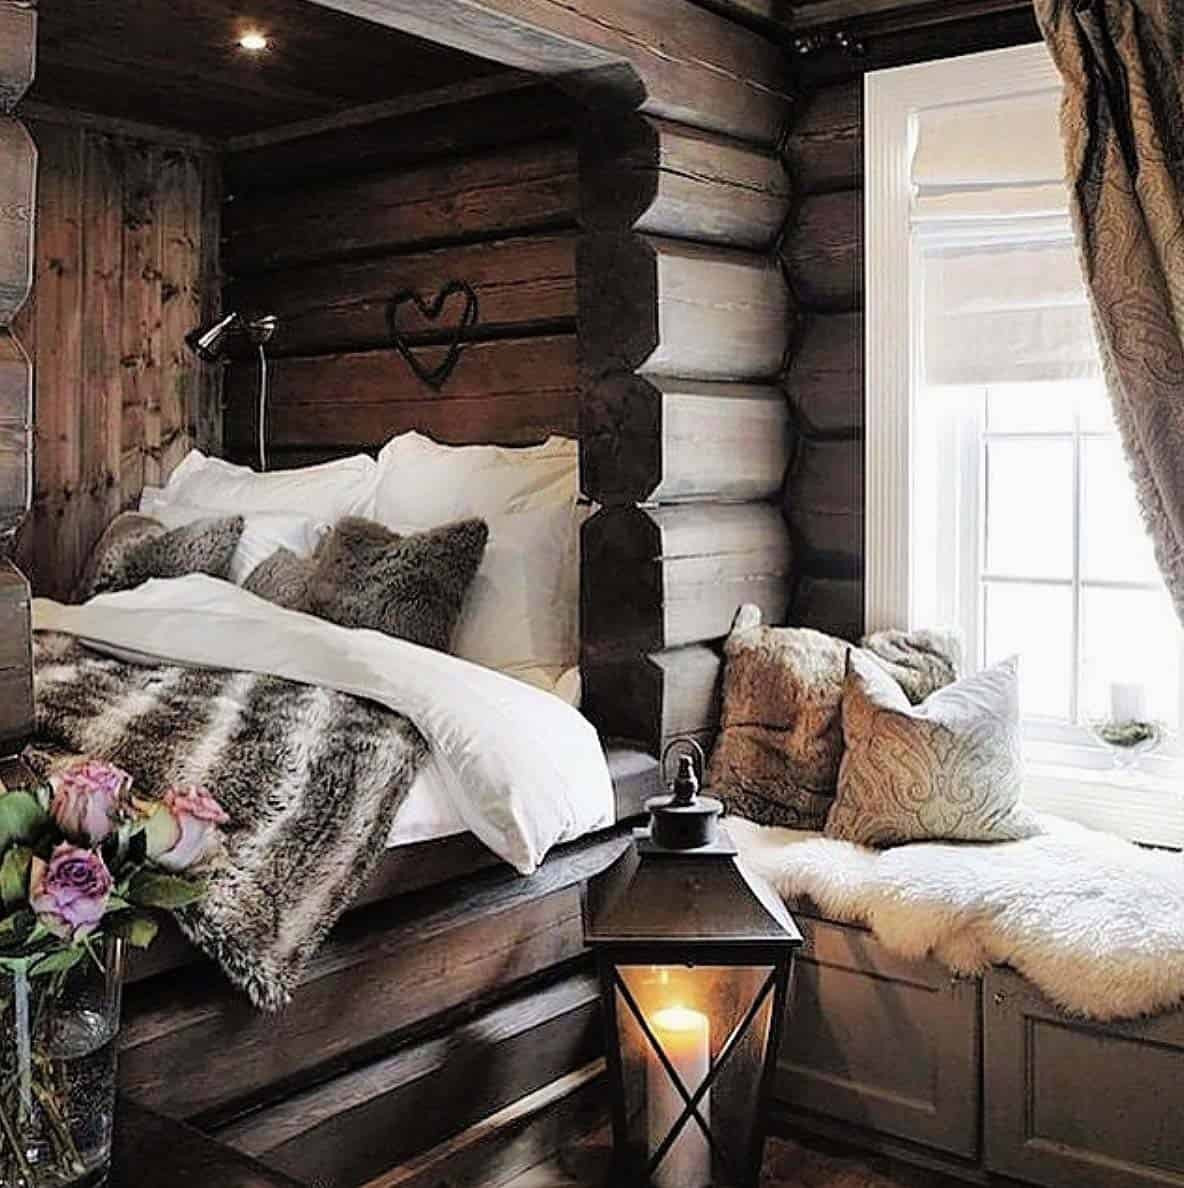 How to Decorate a Bedroom. In this Article: Article Summary Getting Started Decorating the Walls and Windows Adding Pillows, Linens, Curtains, and Rugs Adding Accents and Accessories Community Q&A 12 References Are you tired of coming home to a nondescript bedroom? Or have you had the same style for years and want to give your room a new look?